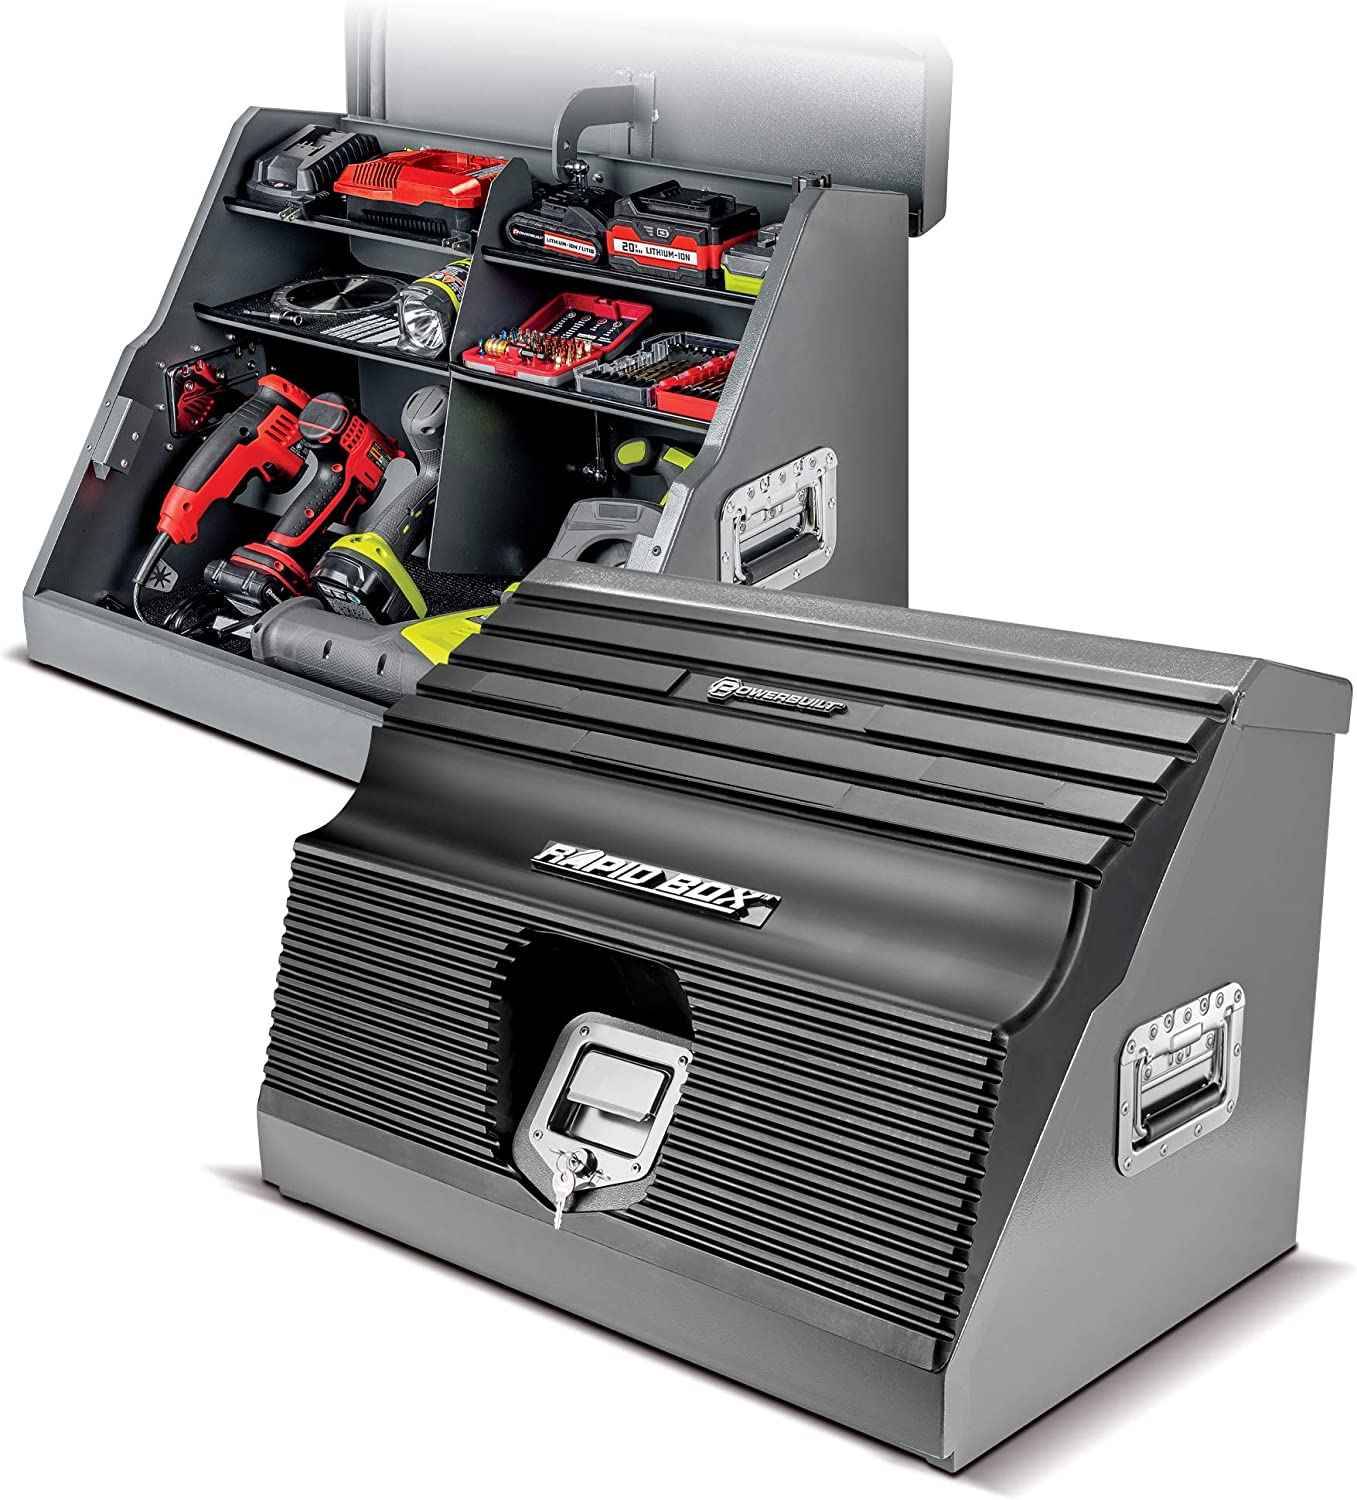 Powerbuilt 26 In. Portable Slant Front Power Tool Locker Toolbox with Power Drill Slots, Storage Compartments, 16 Ga. Steel, Chrome Hardware, Weather-Resistant Locking Polymer Lid, Gas Struts, 941805E